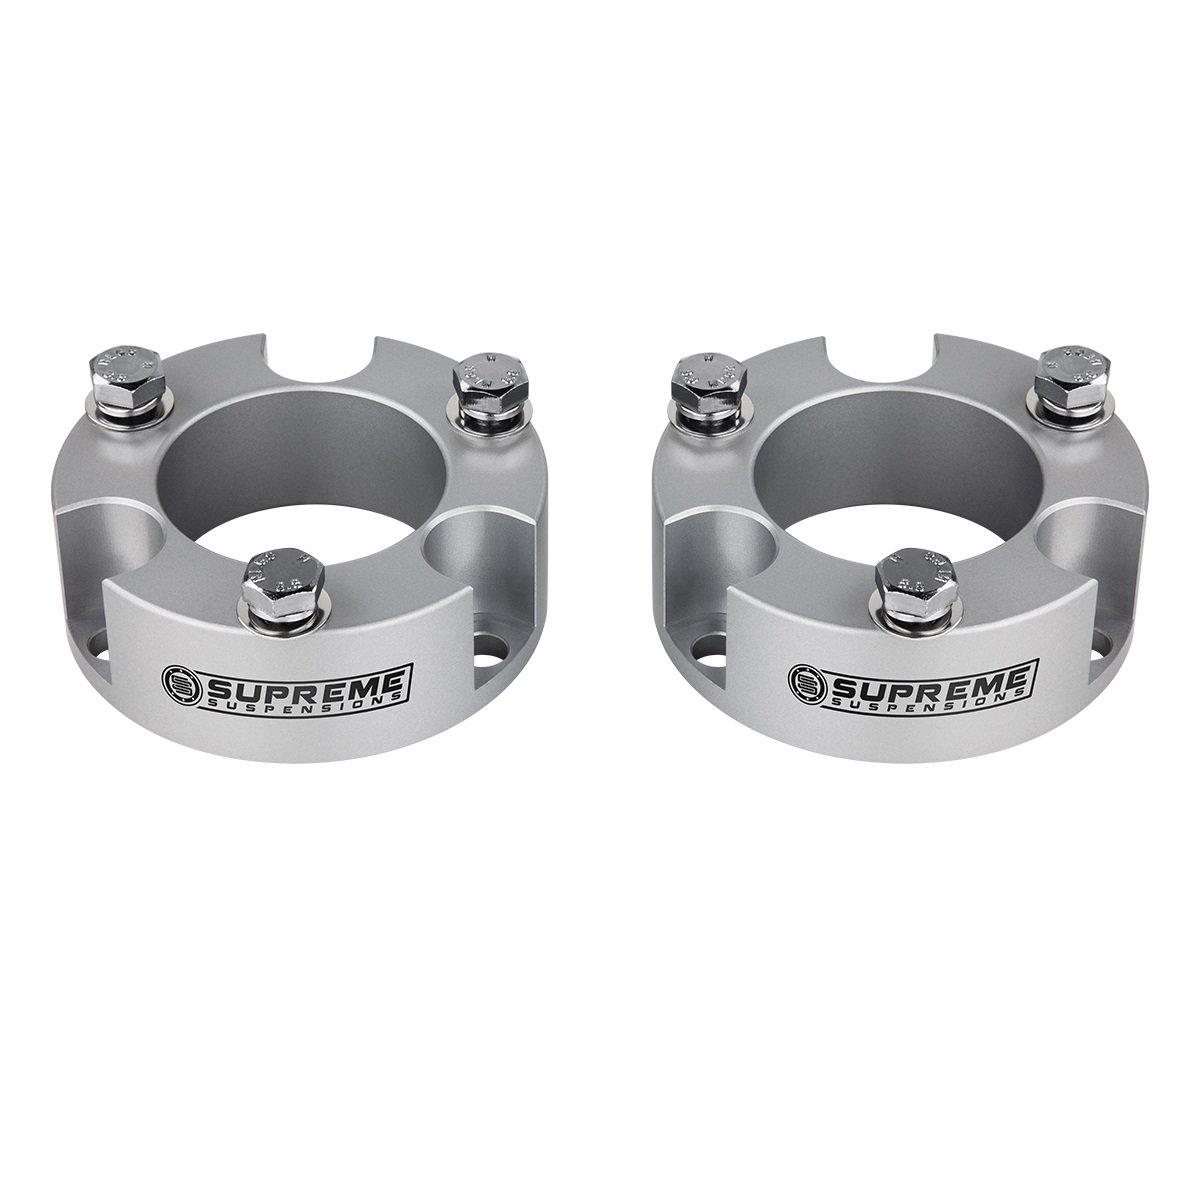 Supreme Suspensions Toyota Tacoma Lift Kit 3'' Front Lift Aircraft Billet Strut Spacers (Silver)